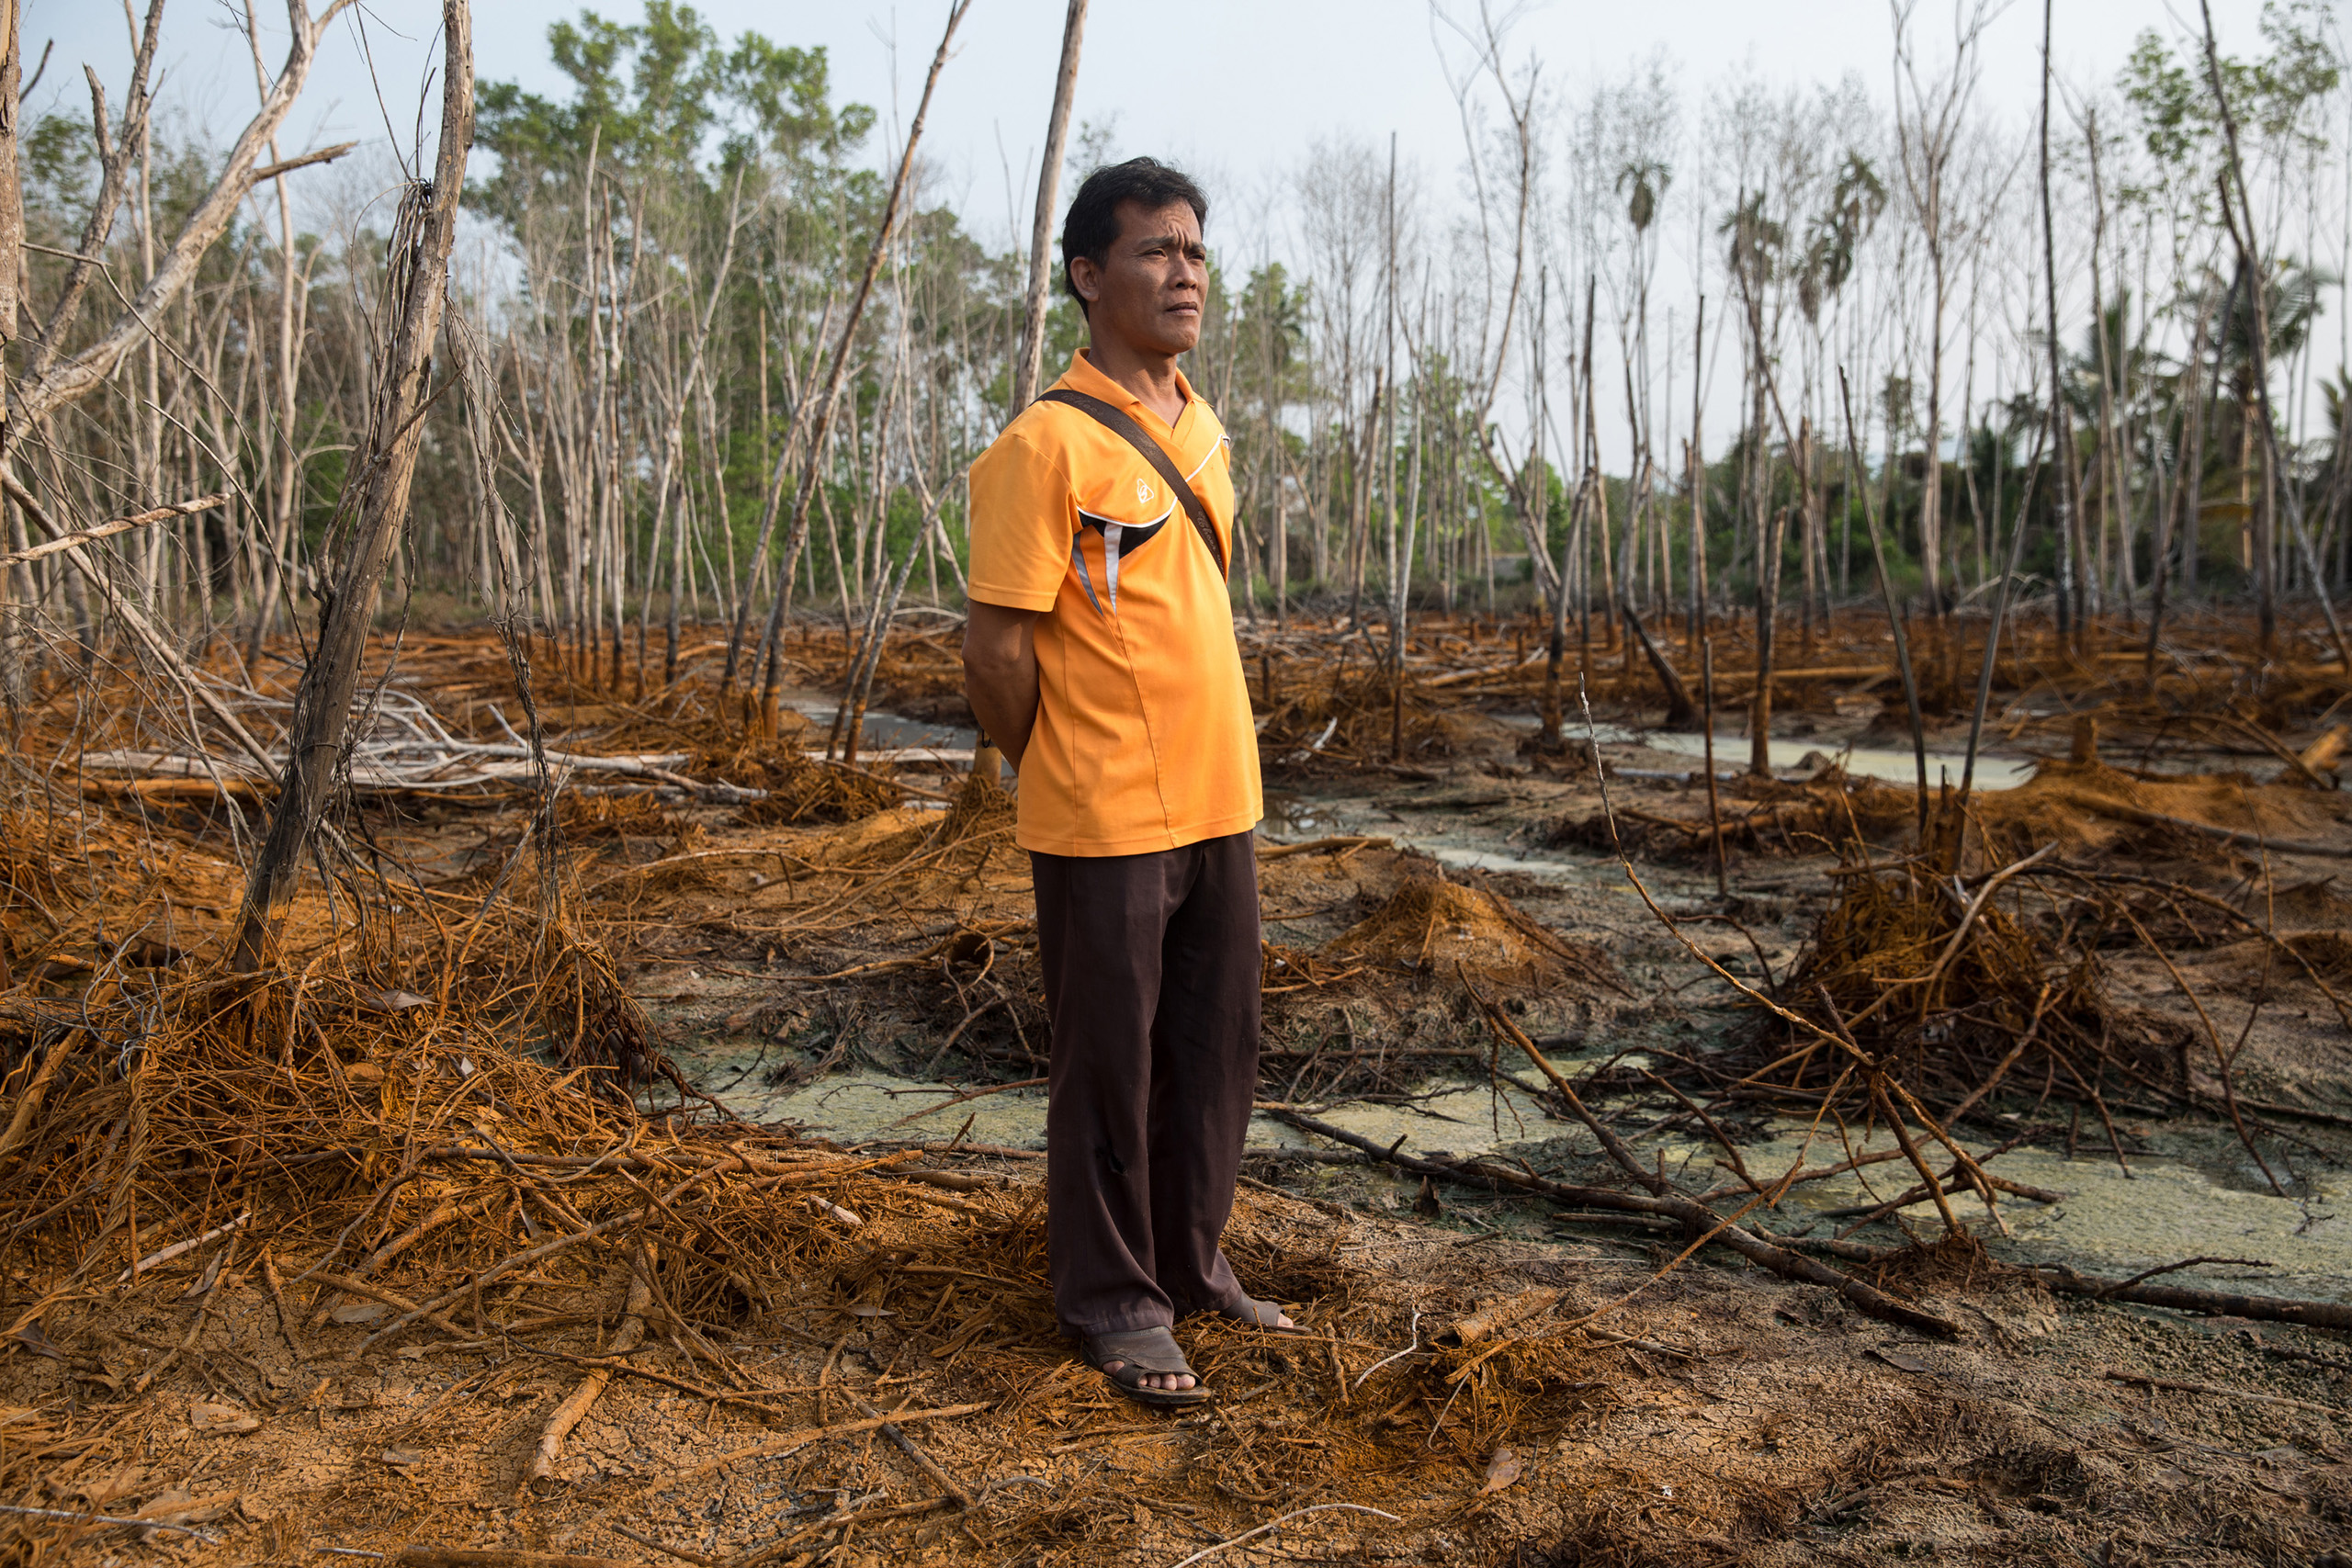 Kh Sanit stands in an area that was previously a rubber plantation but due to polluted water runoff from a nearby factory, everything has died.